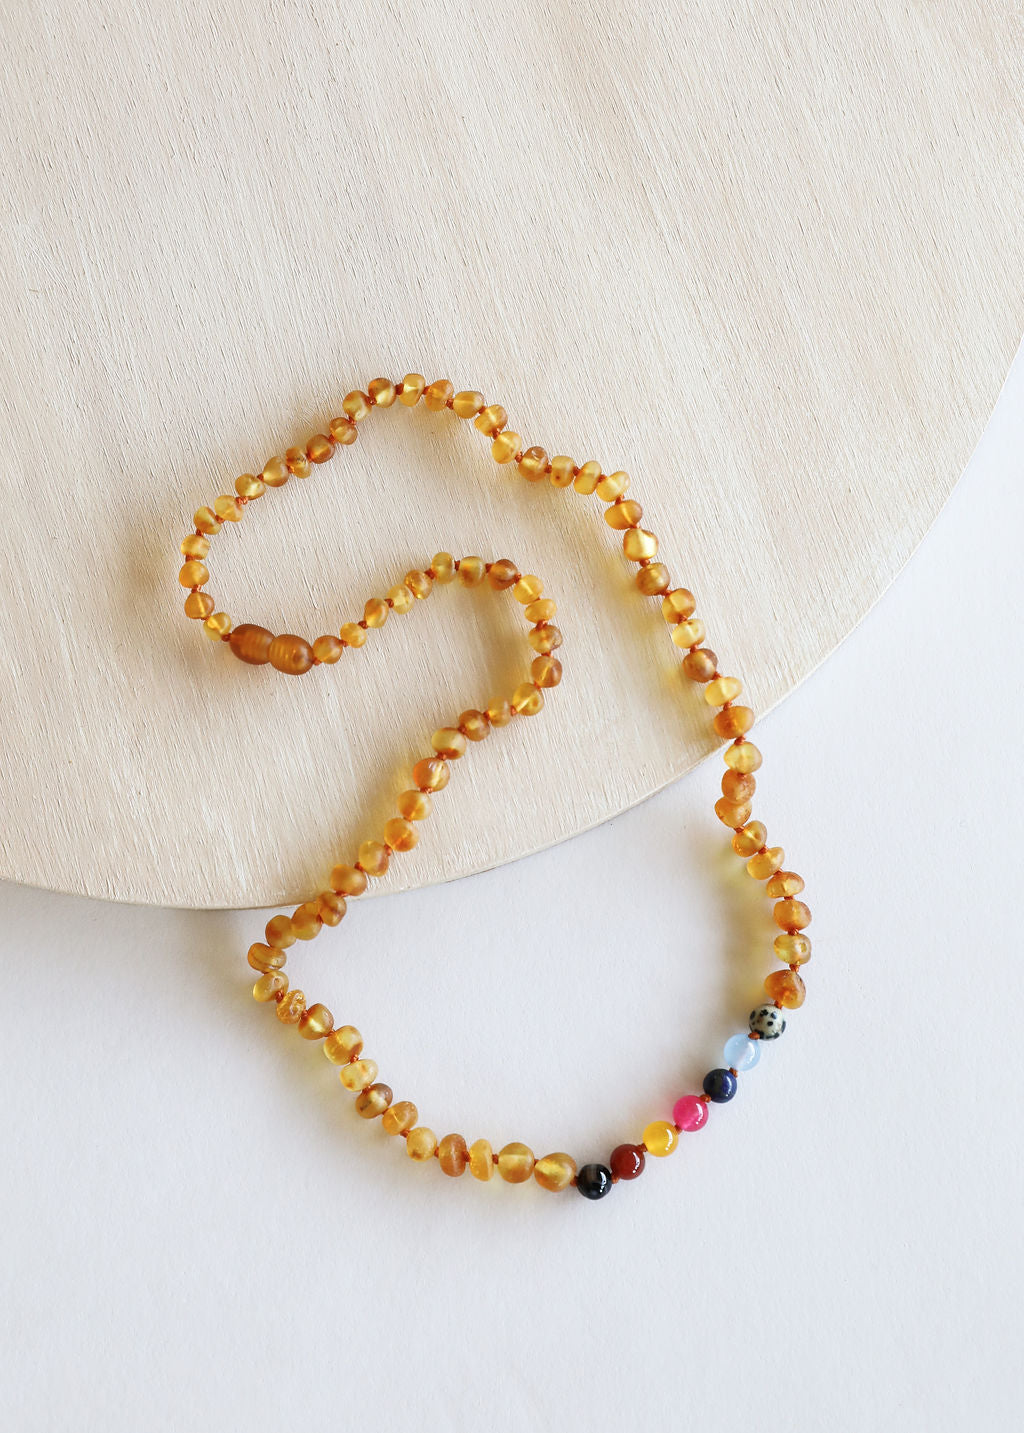 Raw Honey Amber + Vintage Style Necklace